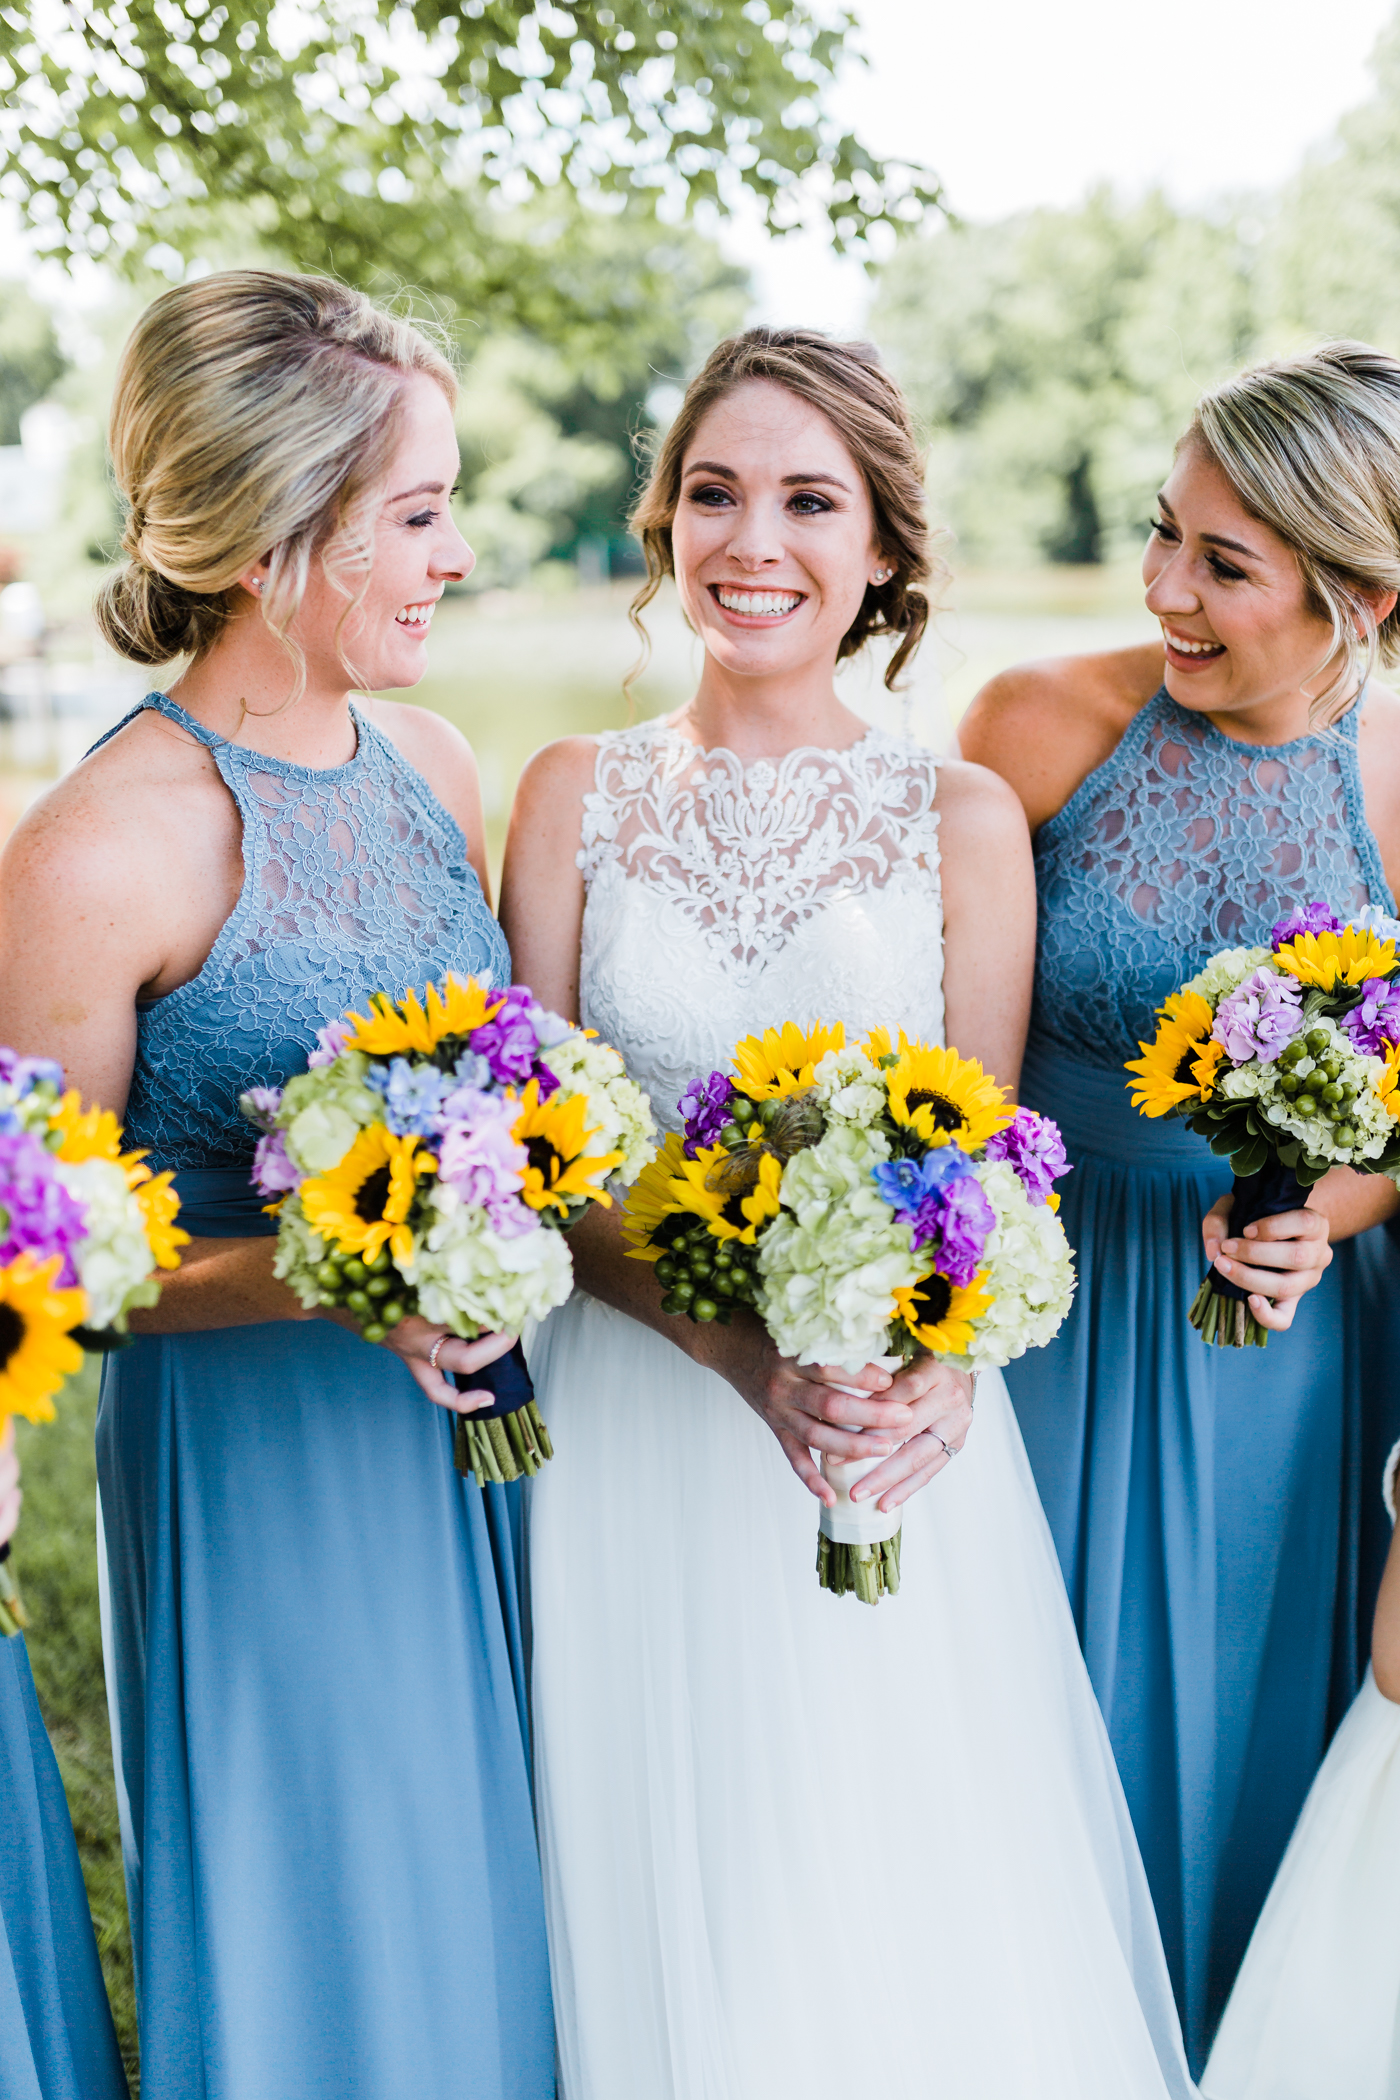 beautiful bride smiling with her bridesmaids - md wedding photographer